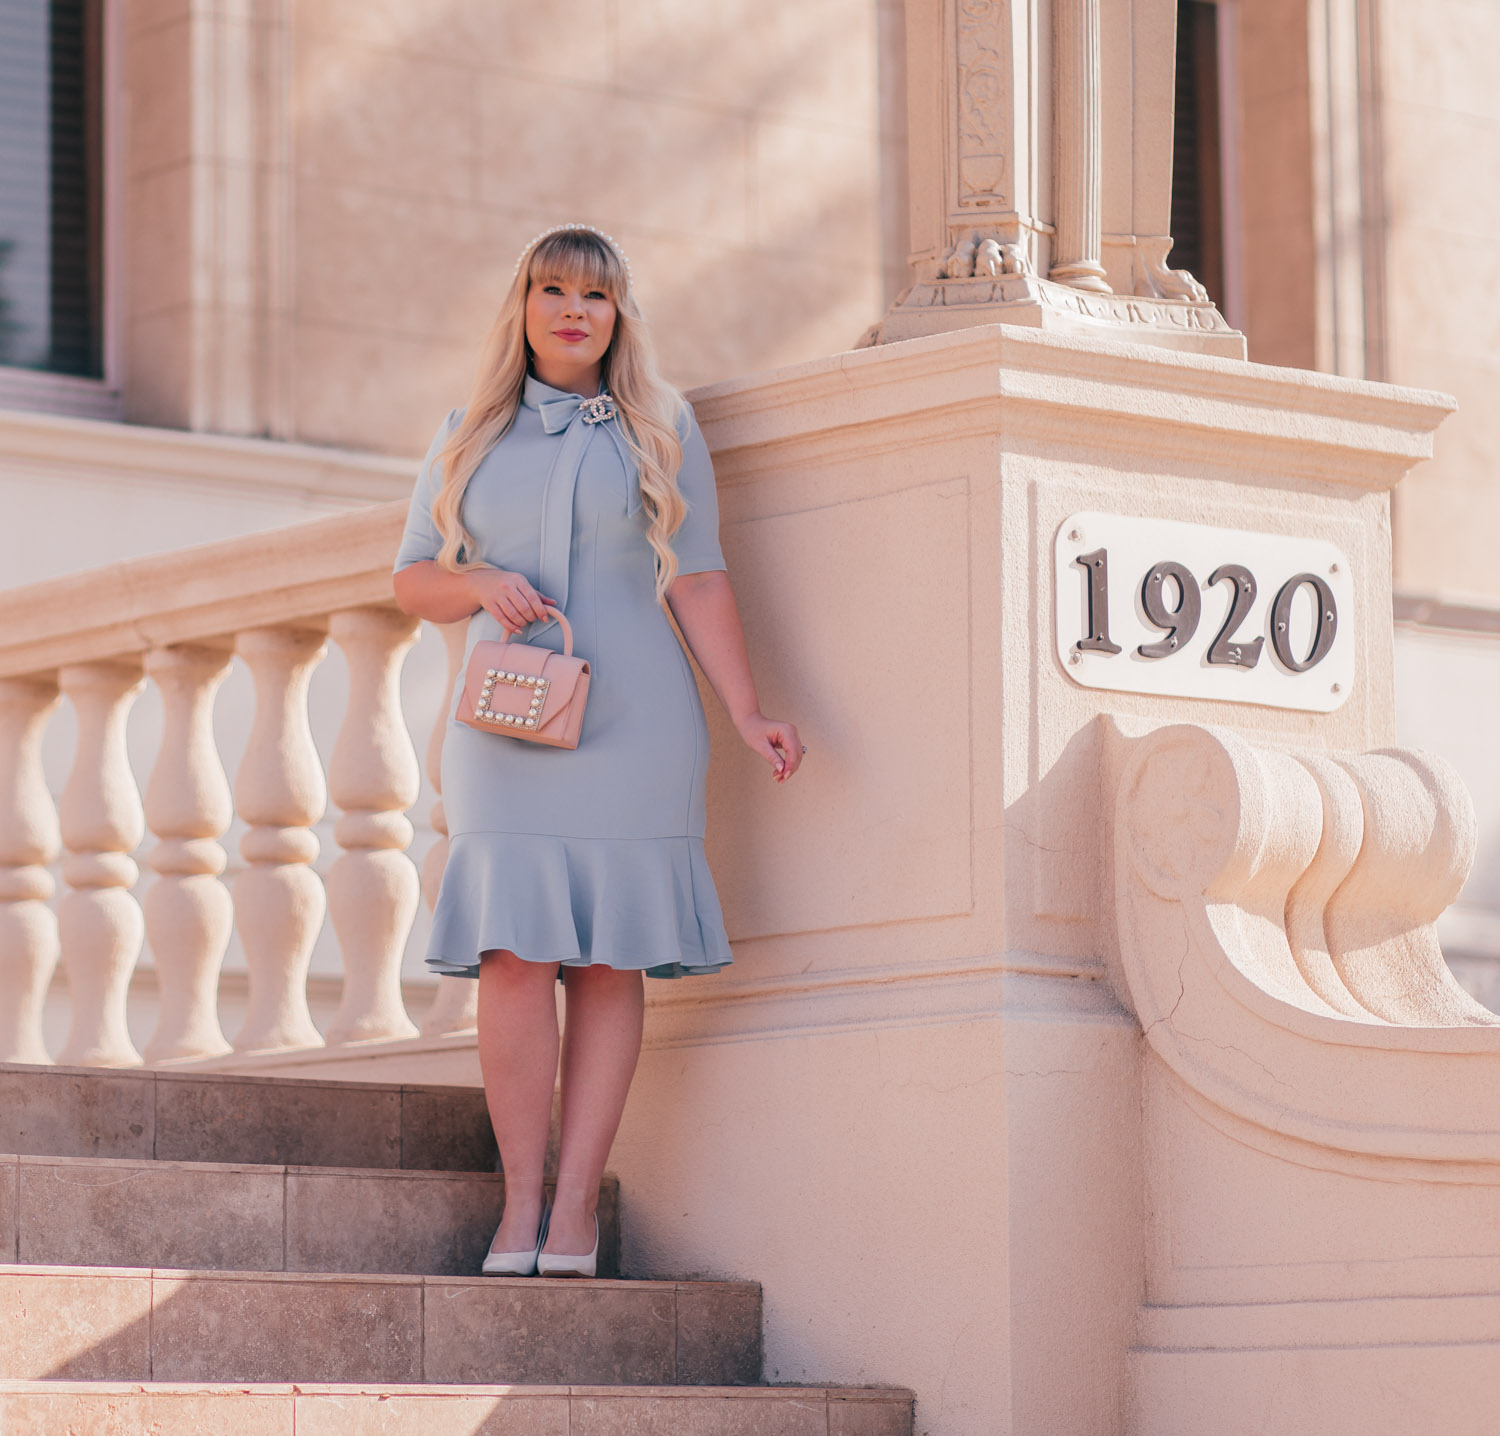 Feminine Fashion Blogger Elizabeth Hugen of Lizzie in Lace Styles The Cutest Feminine Vintage Inspired Outfit including an Adrianna Papell bow neck dress